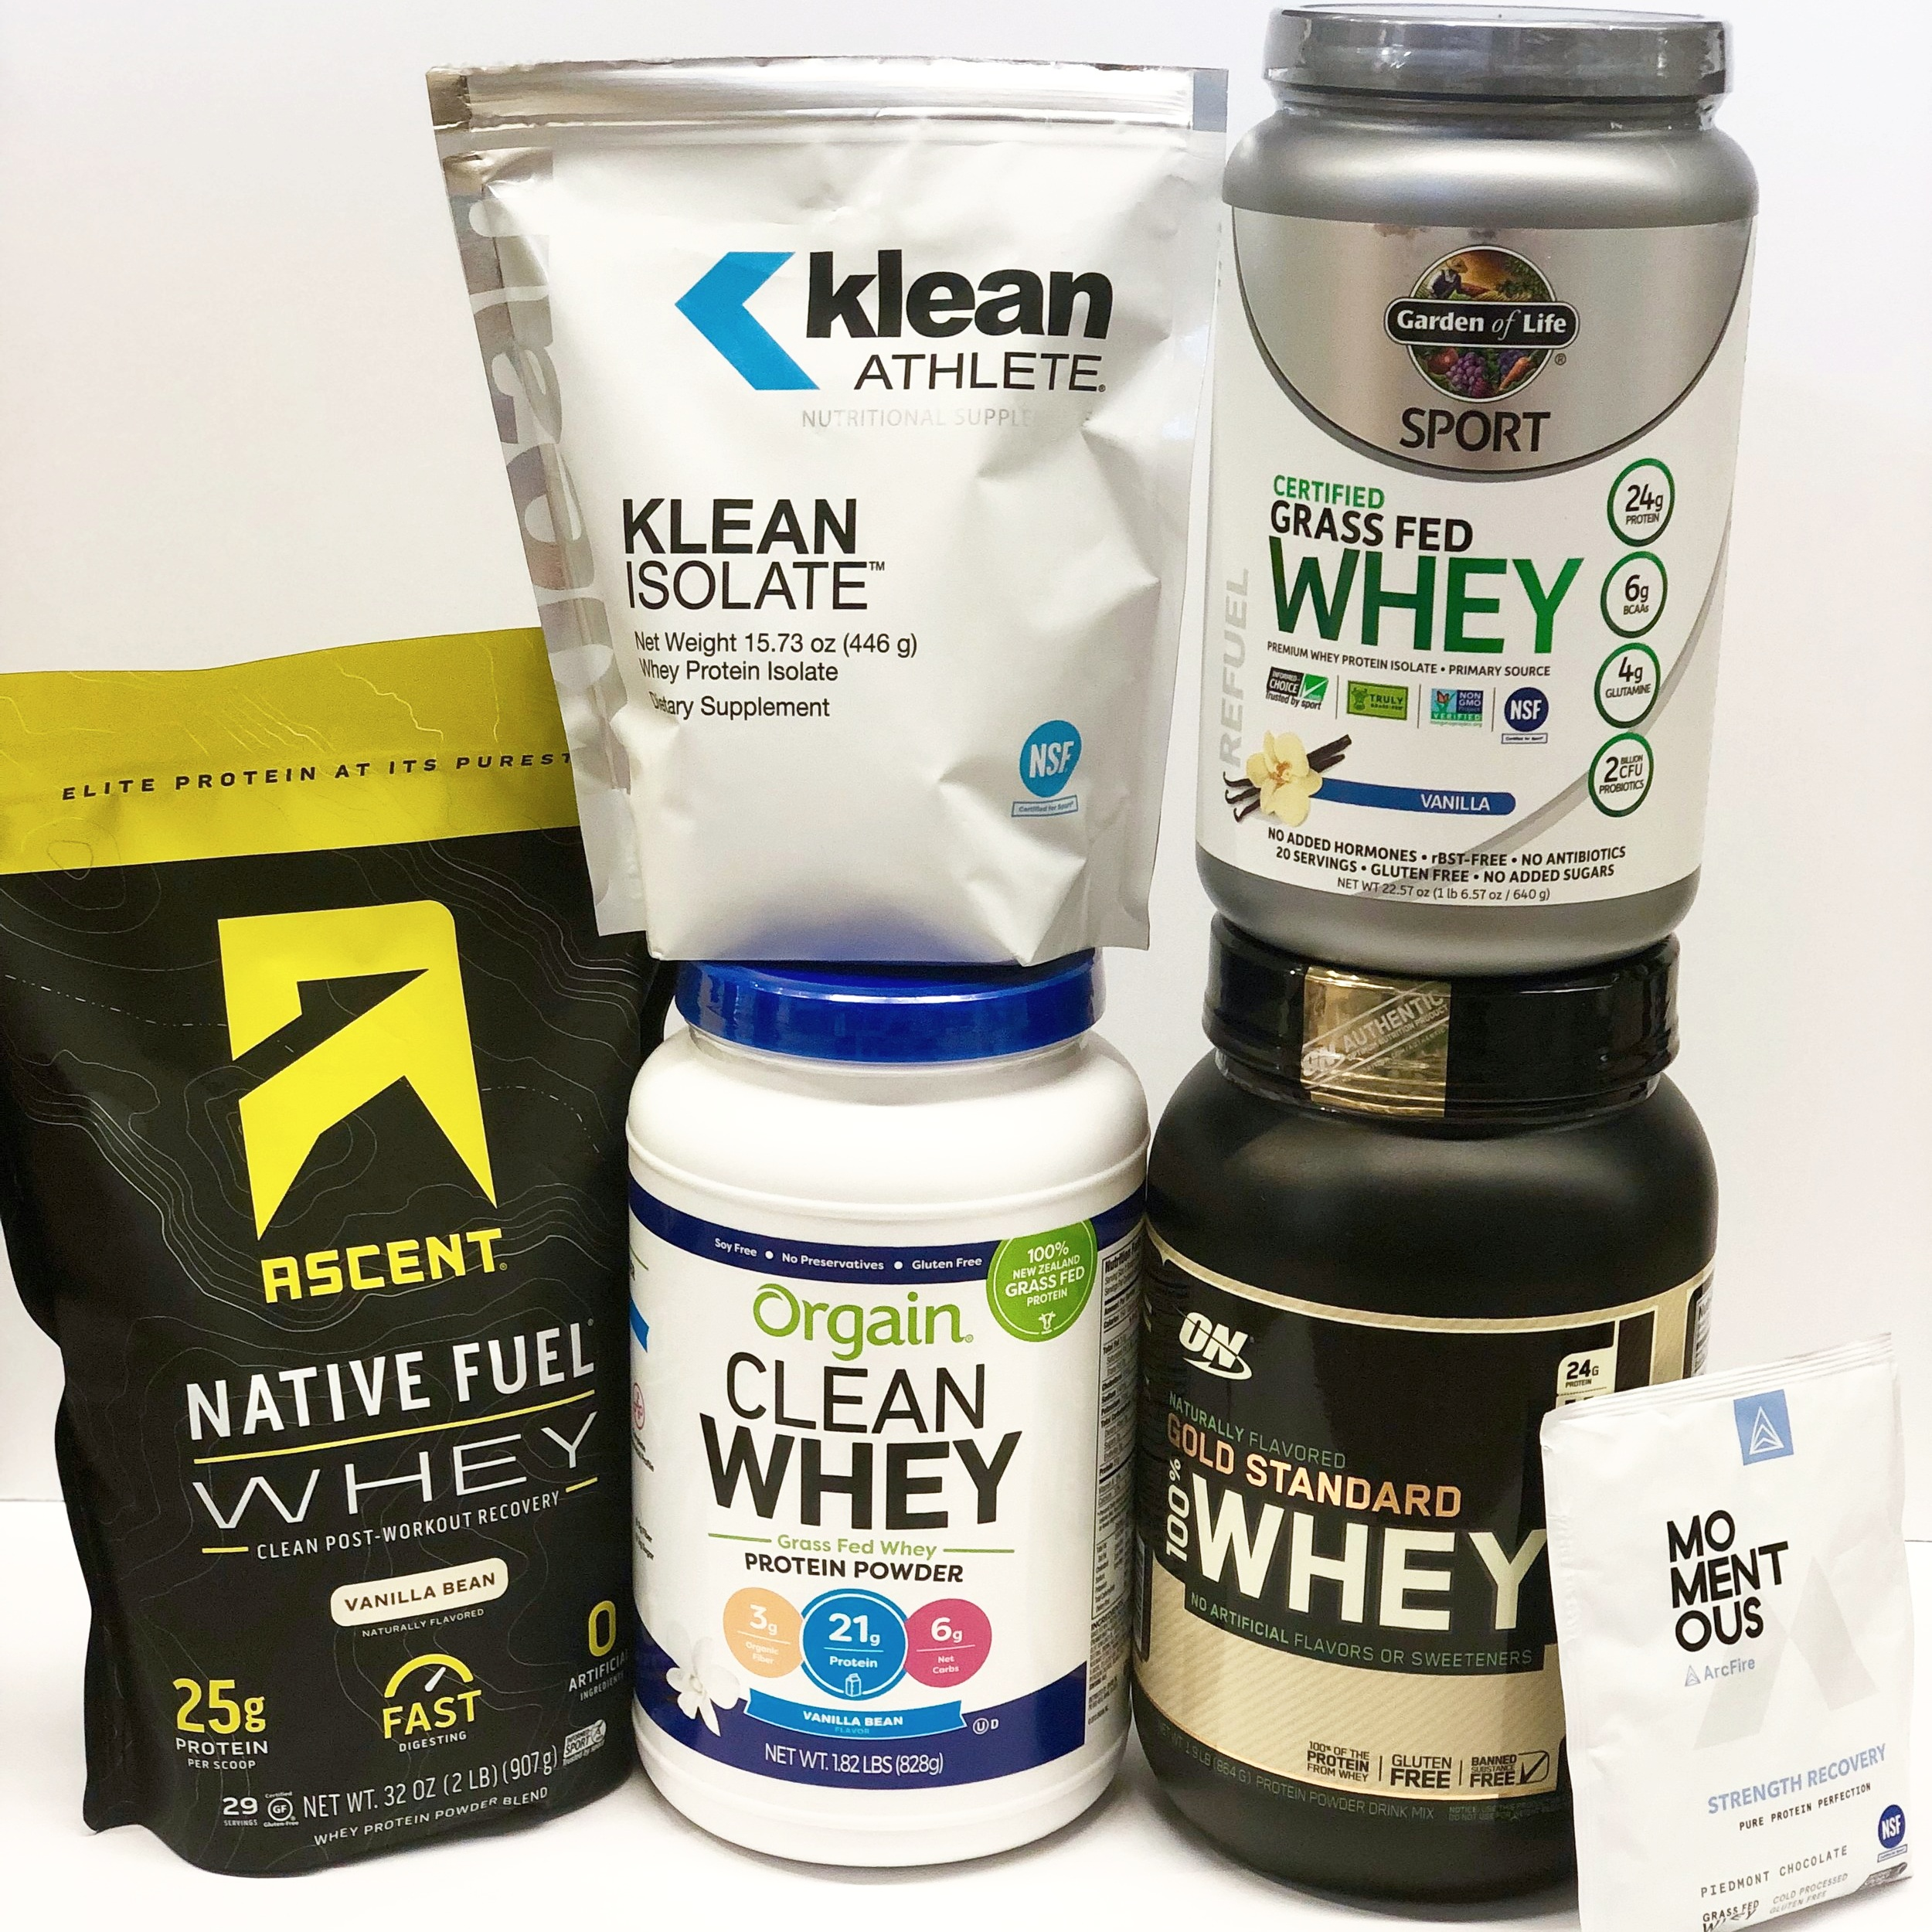 Athlete's Guide to Whey Protein Powders